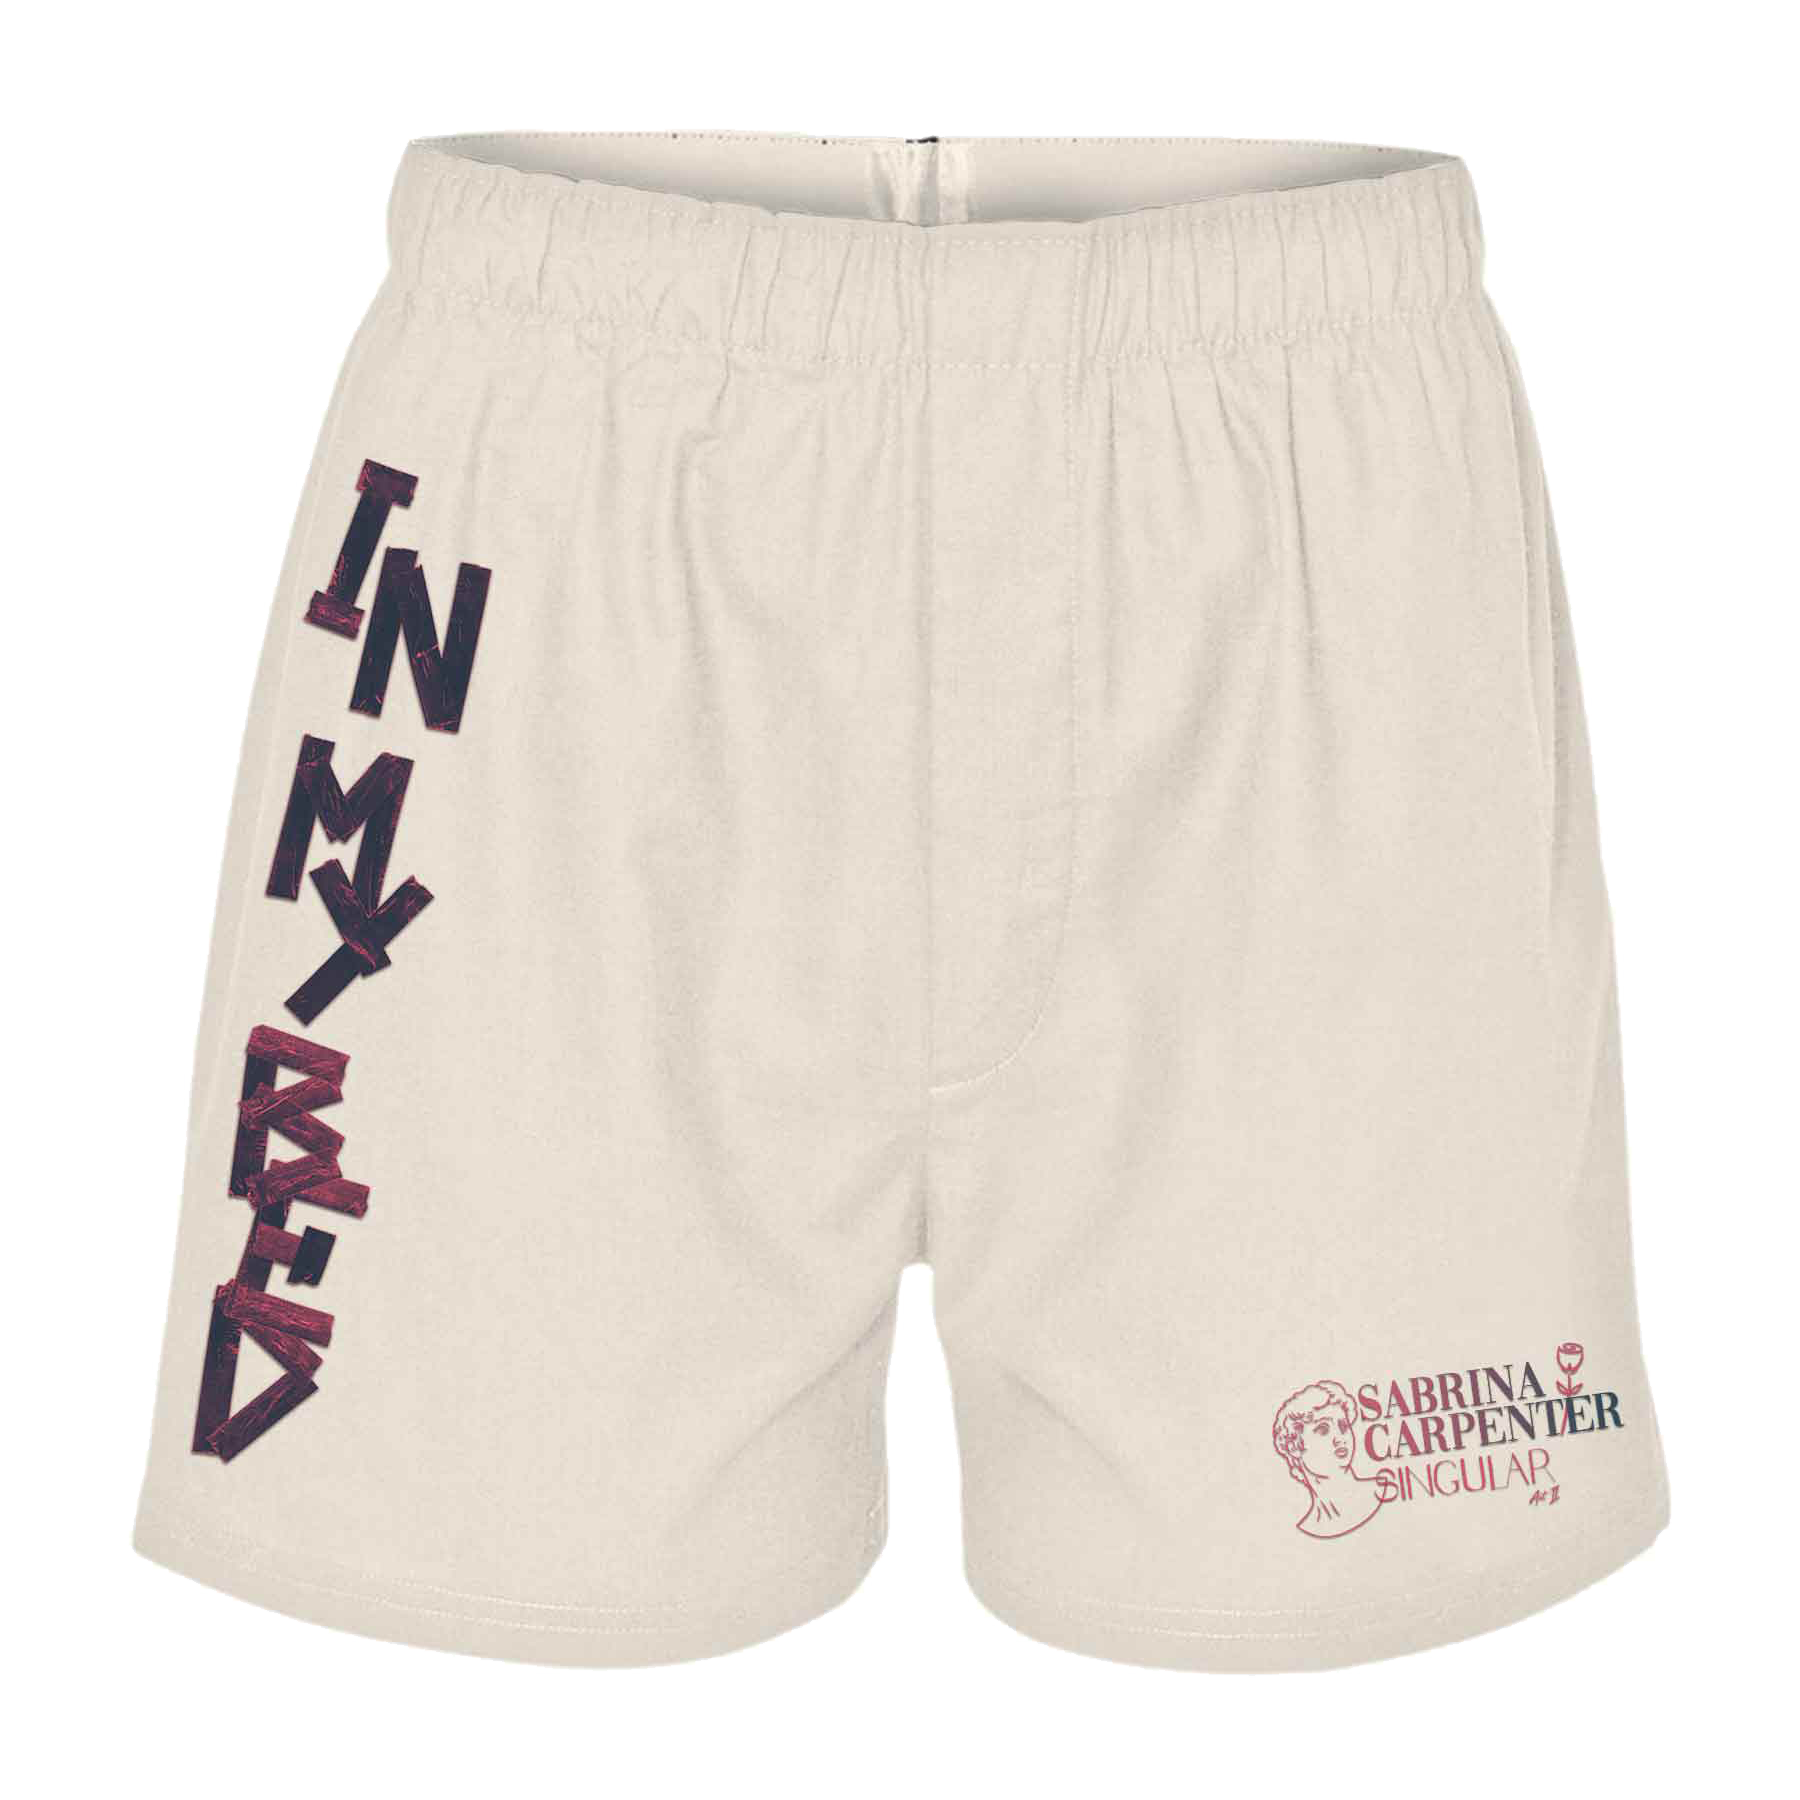 'IN MY BED' BOXER SHORTS